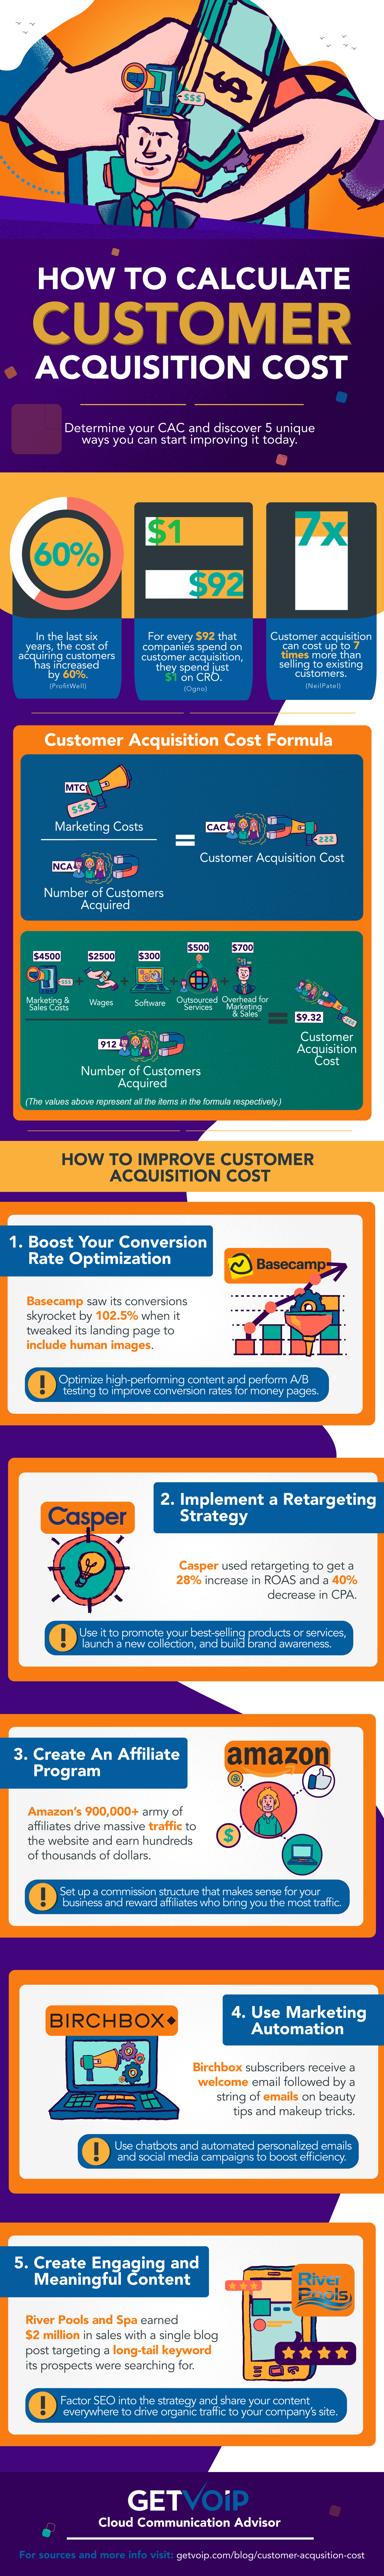 infographic - how to calculate customer acquisition cost (CAC)